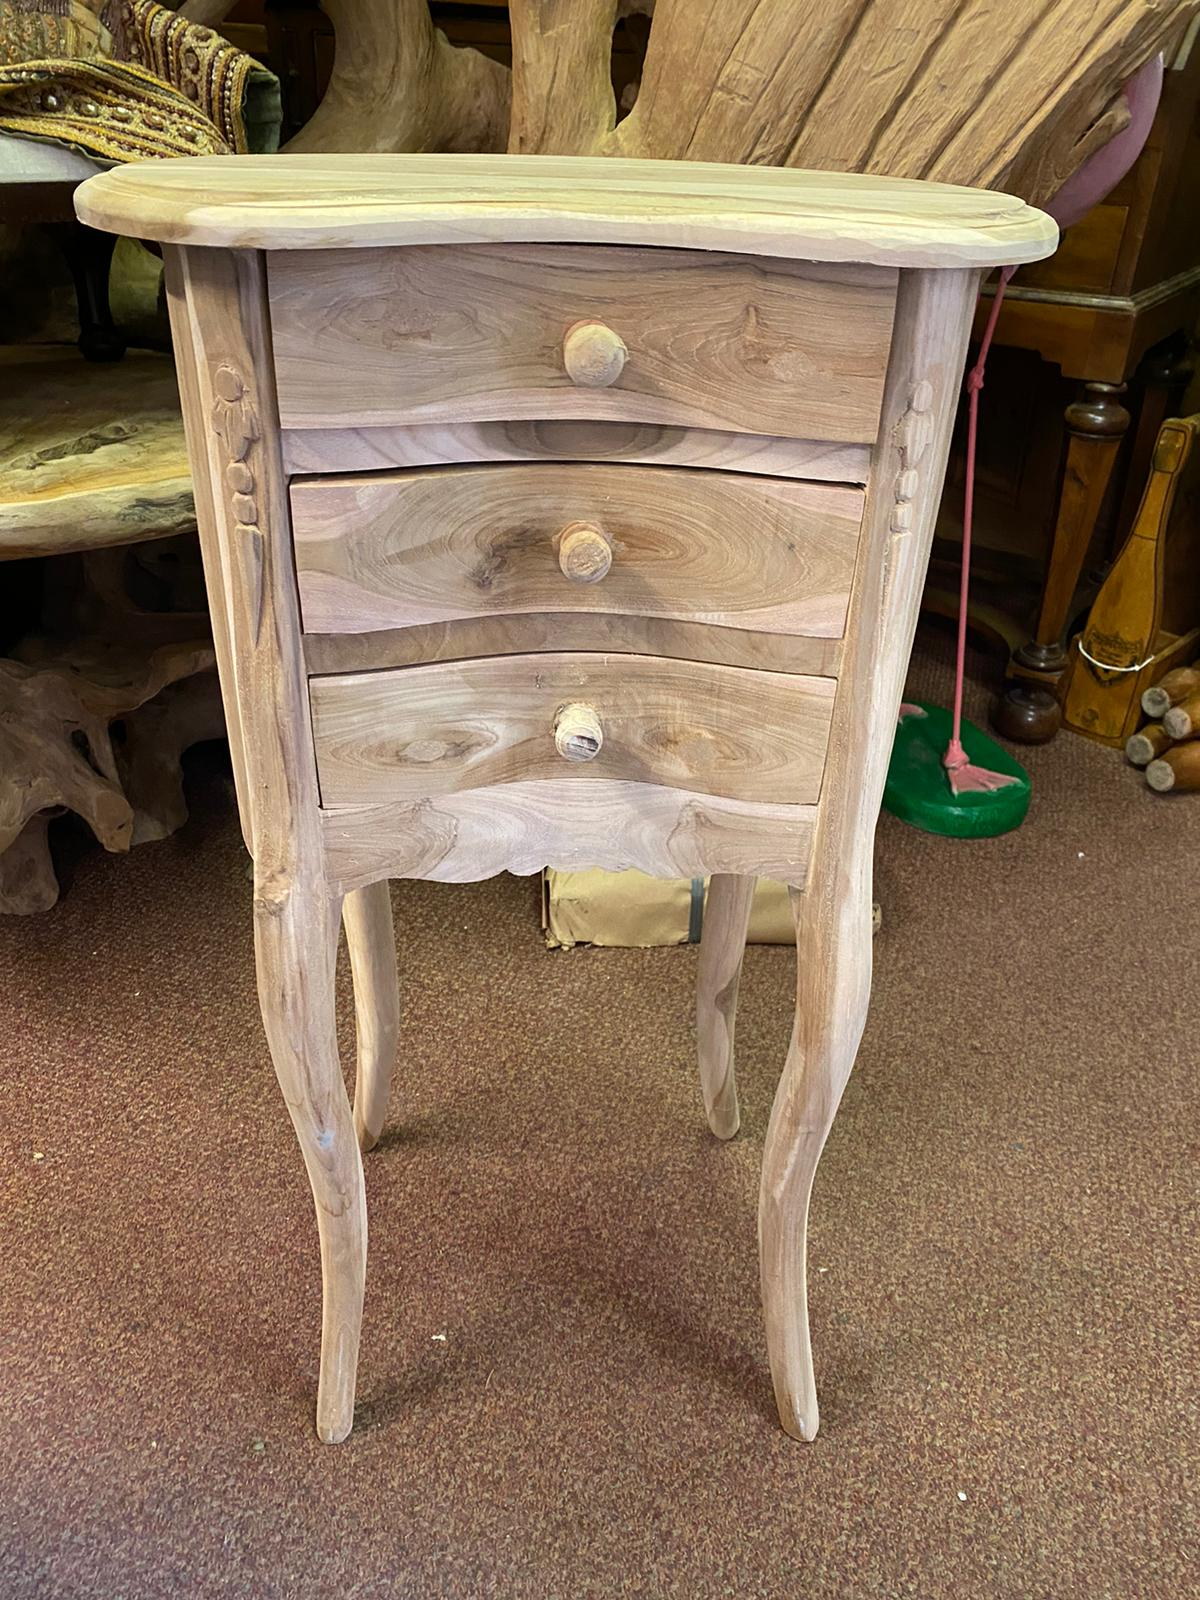 Kidney shaped bedside table